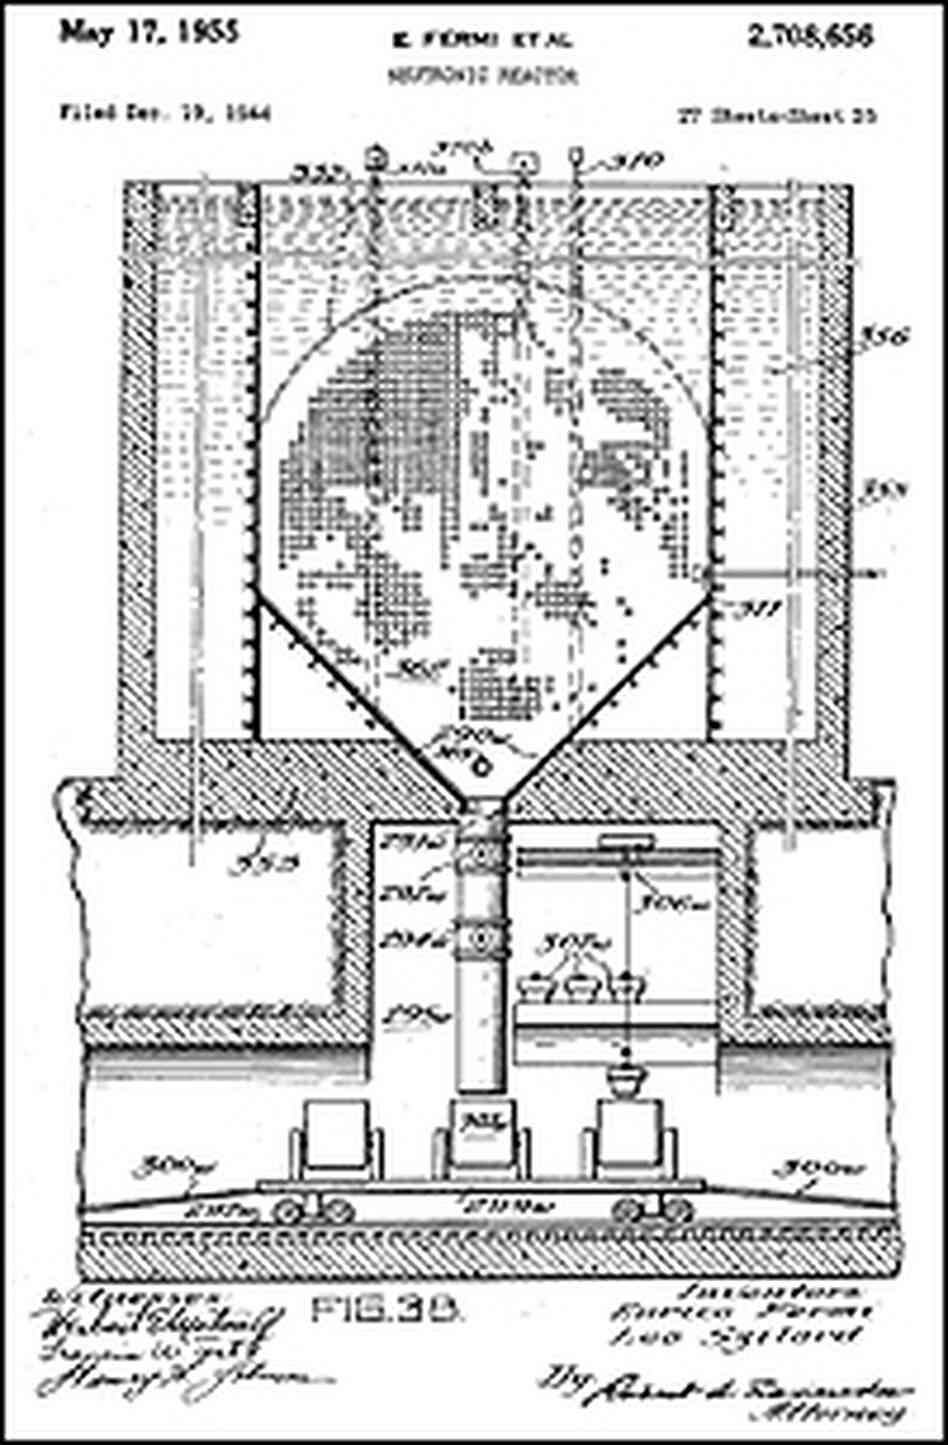 Neutronic reactor patent